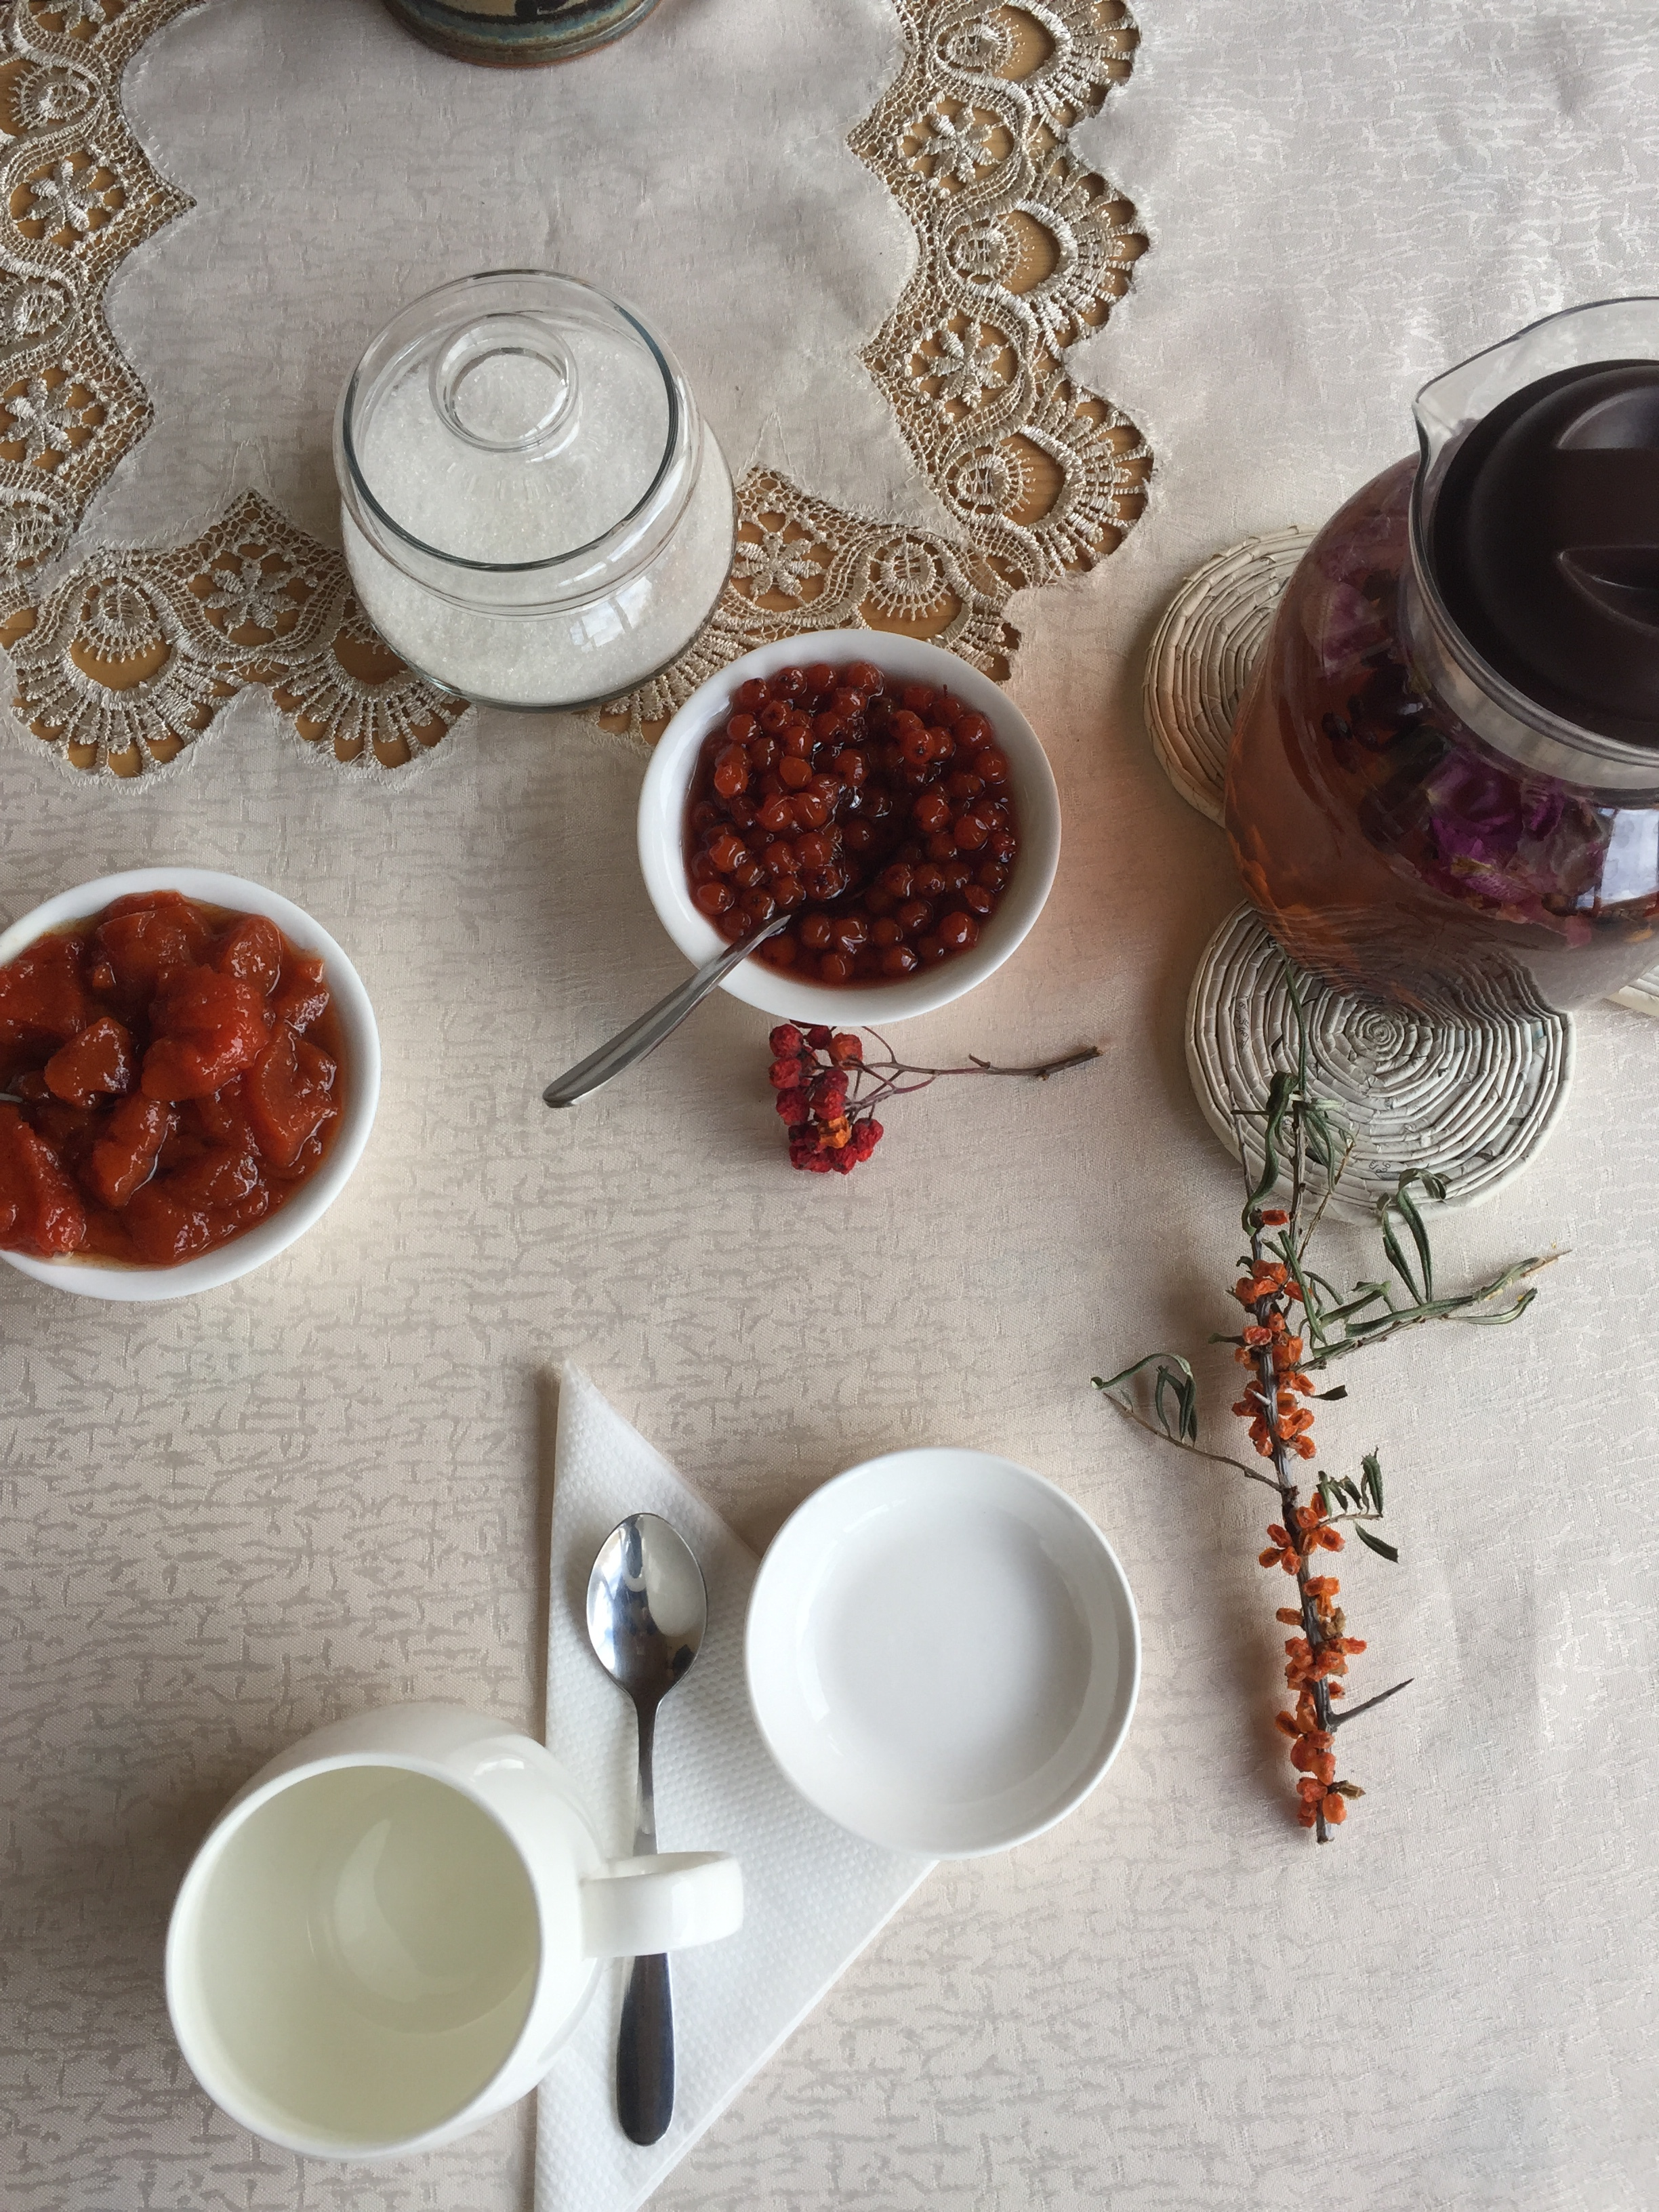 Assorted teas and preserves